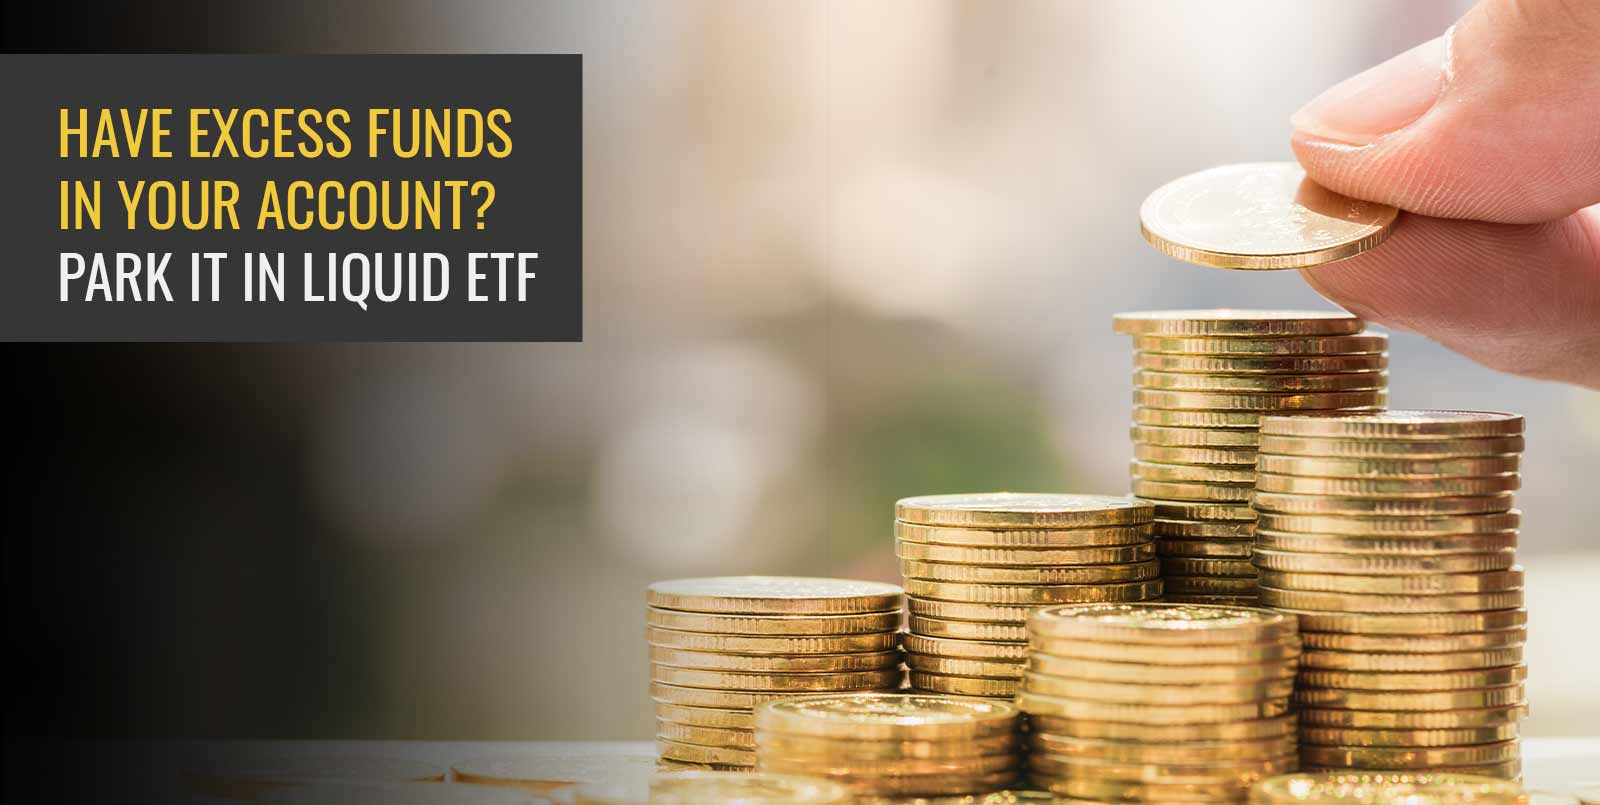 Have excess funds in your account? Park it in liquid ETF